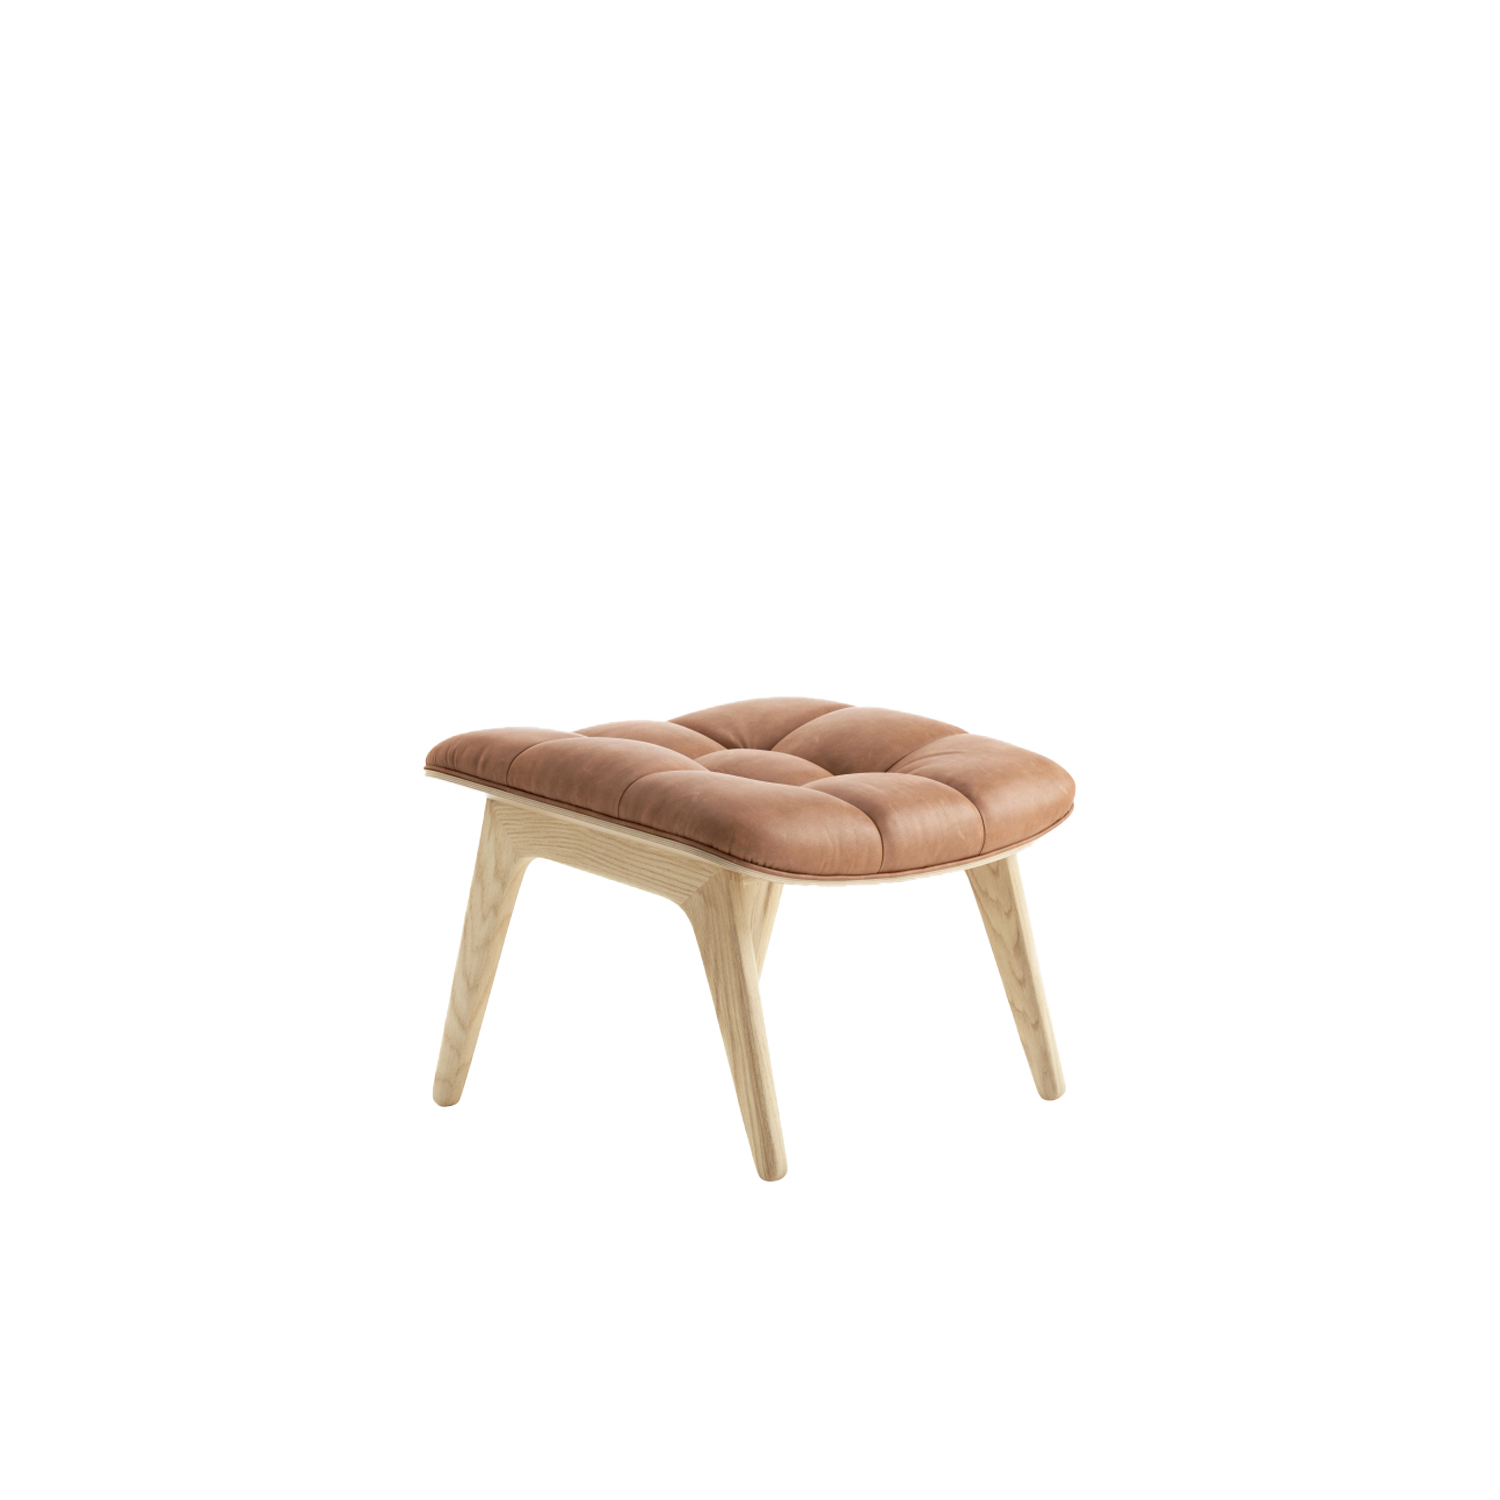 Mammoth Ottoman - The Mammoth Ottoman is handcrafted with a solid oak frame. It's designed to go together with the Mammoth Chair and has matching upholstery. The Mammoth Ottoman seat is formed via the same compression mould as with the seat and back of the Mammoth Chair. 